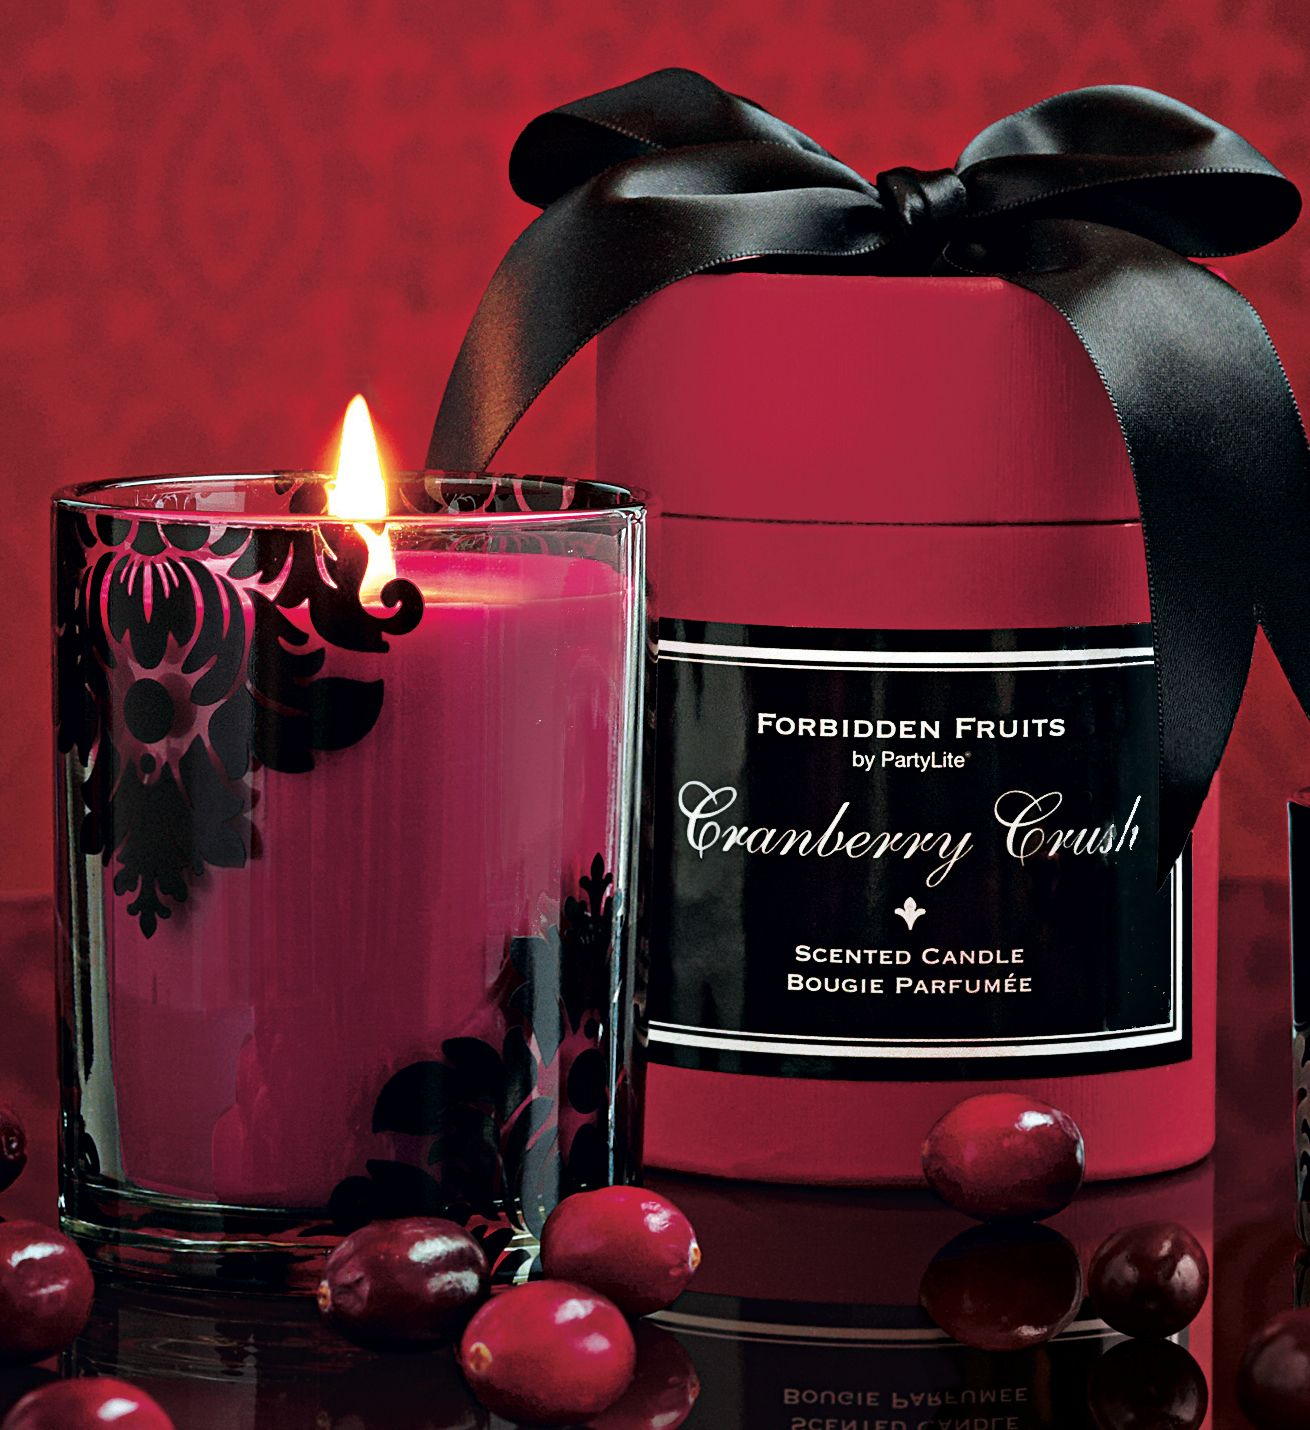 New Fragrance Forbidden Fruits Cranberry Crush Available July 22 Partylite Party Lite Candles Candles Partylite